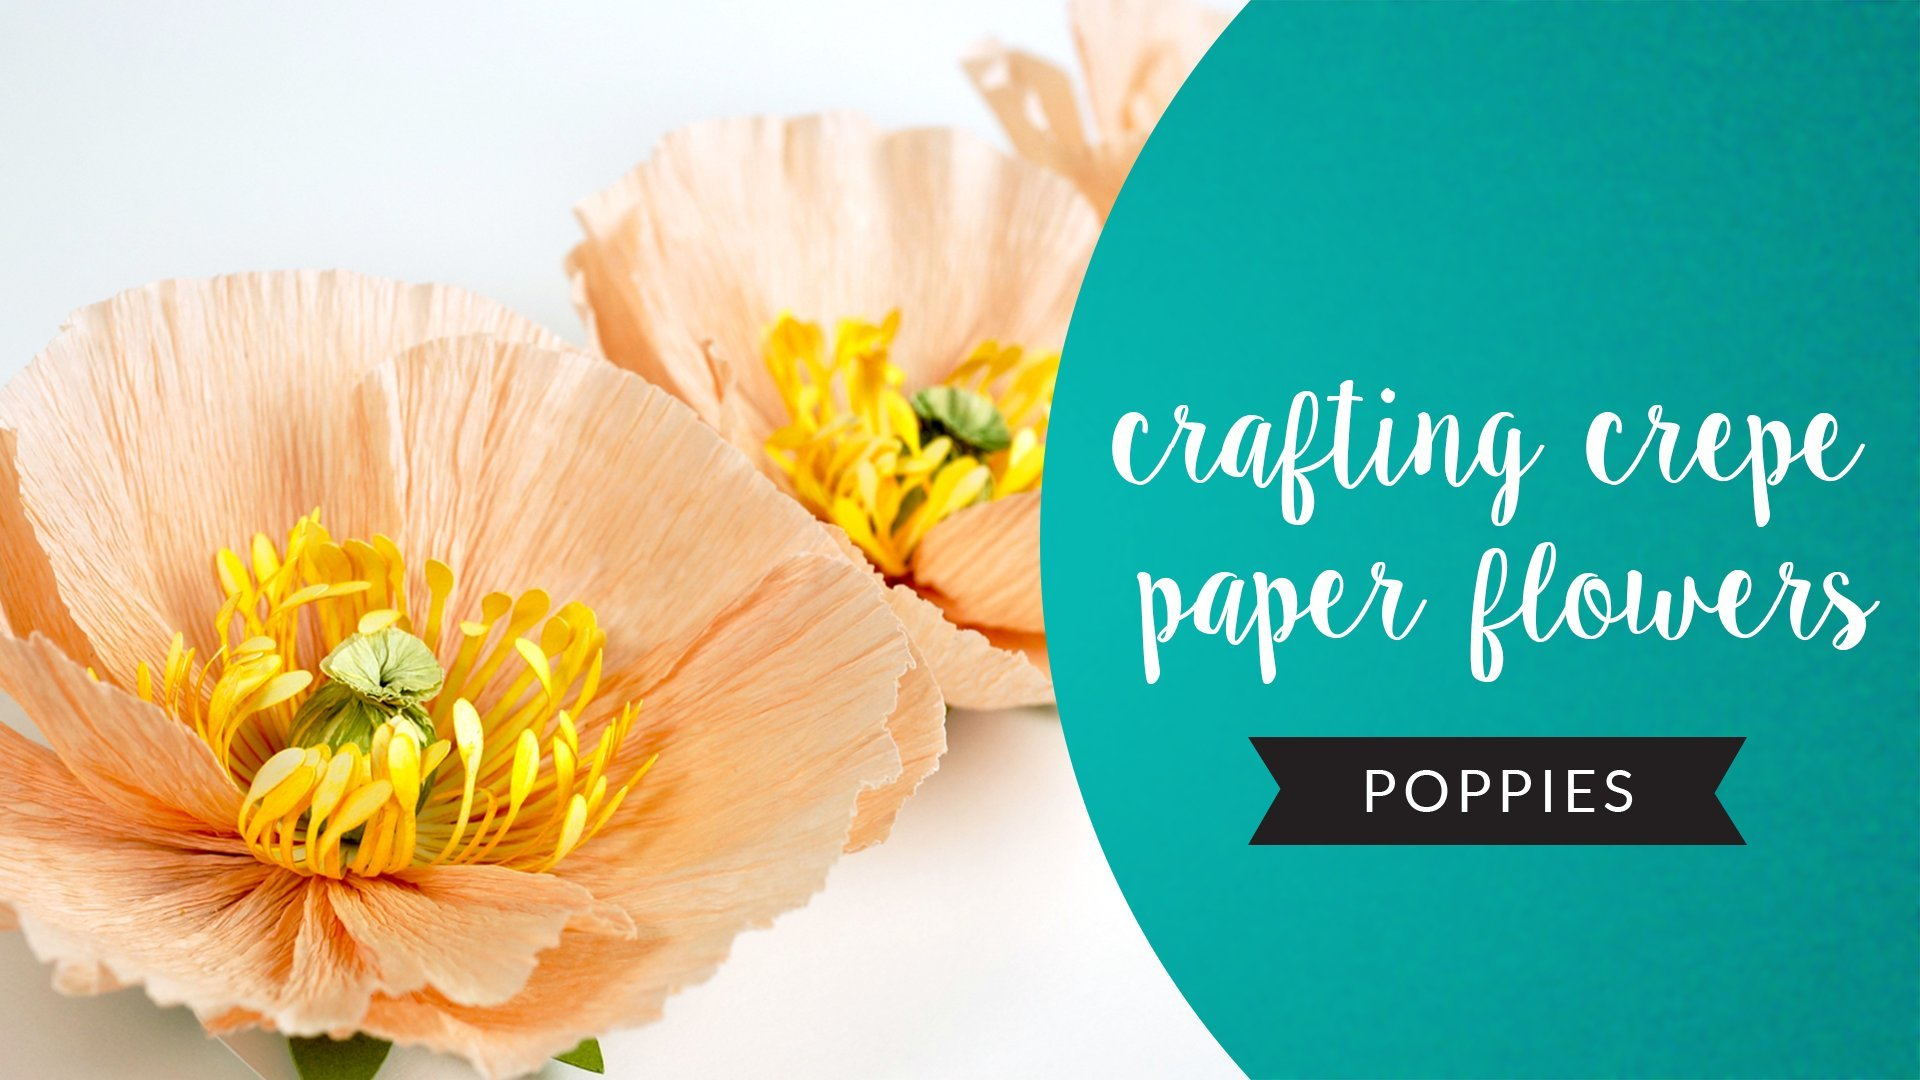 Crafting crepe paper flowers poppies heather grimstead skillshare mightylinksfo